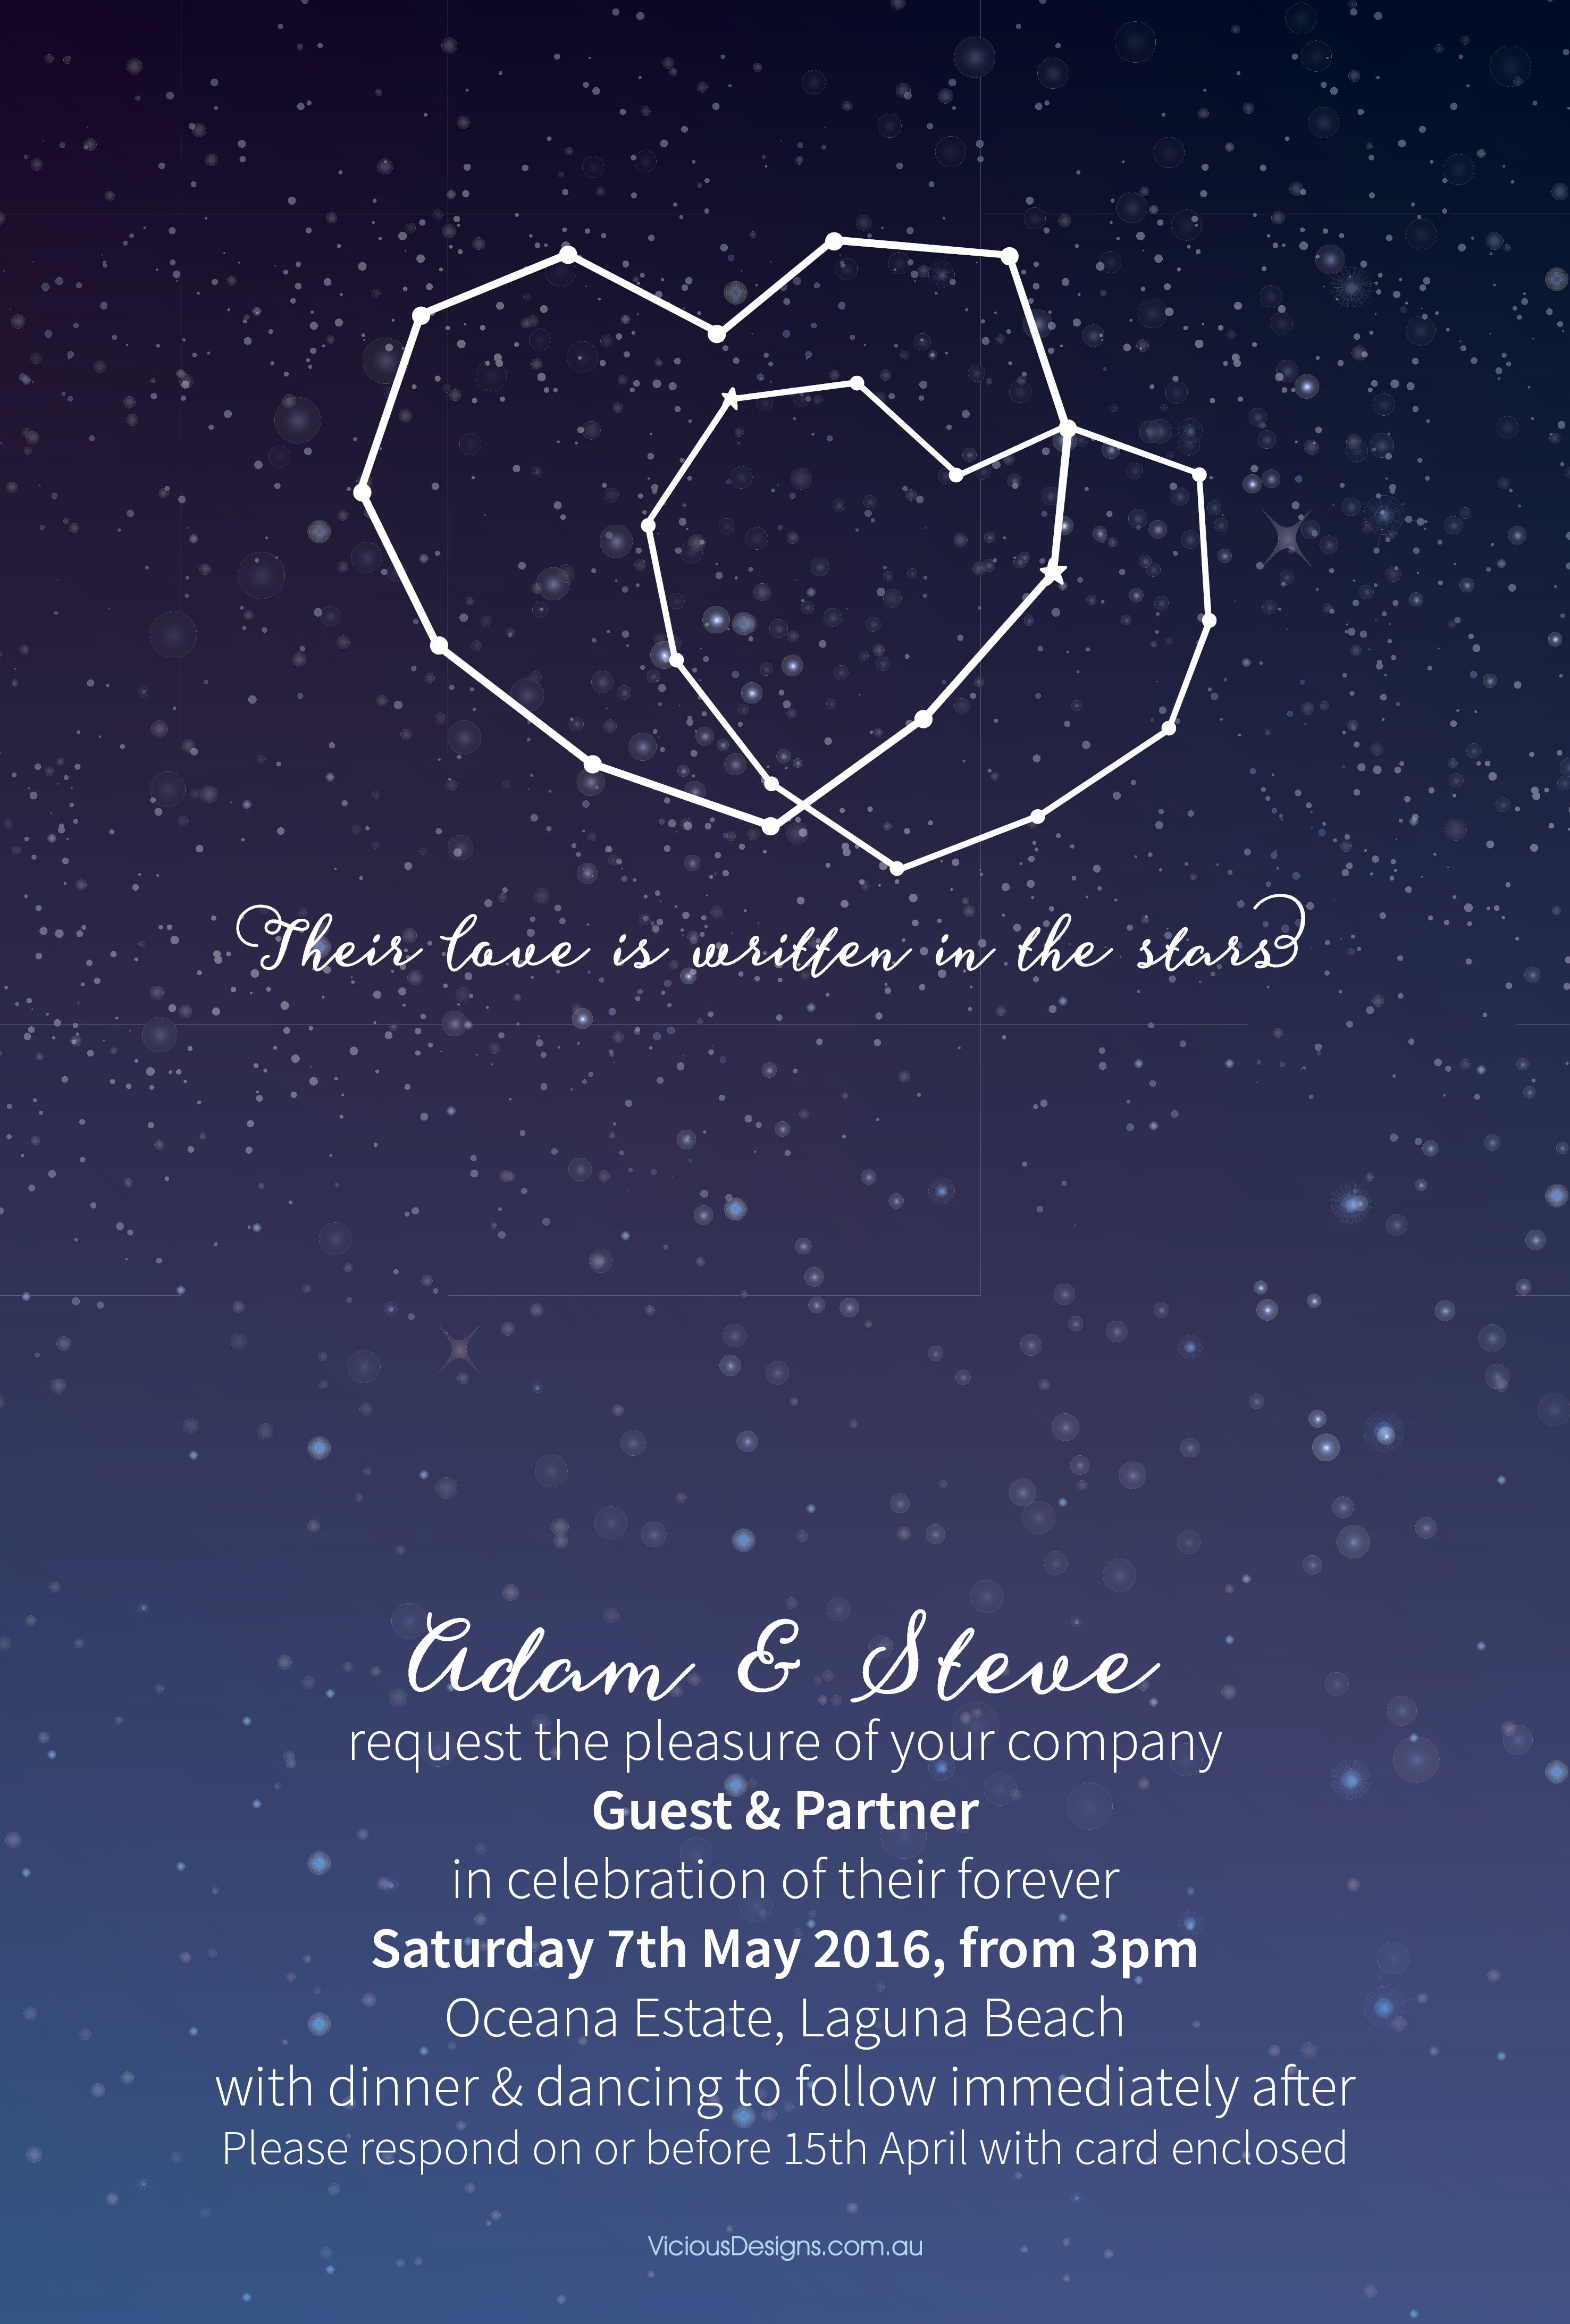 This boldly cute invitation features entwined constellation